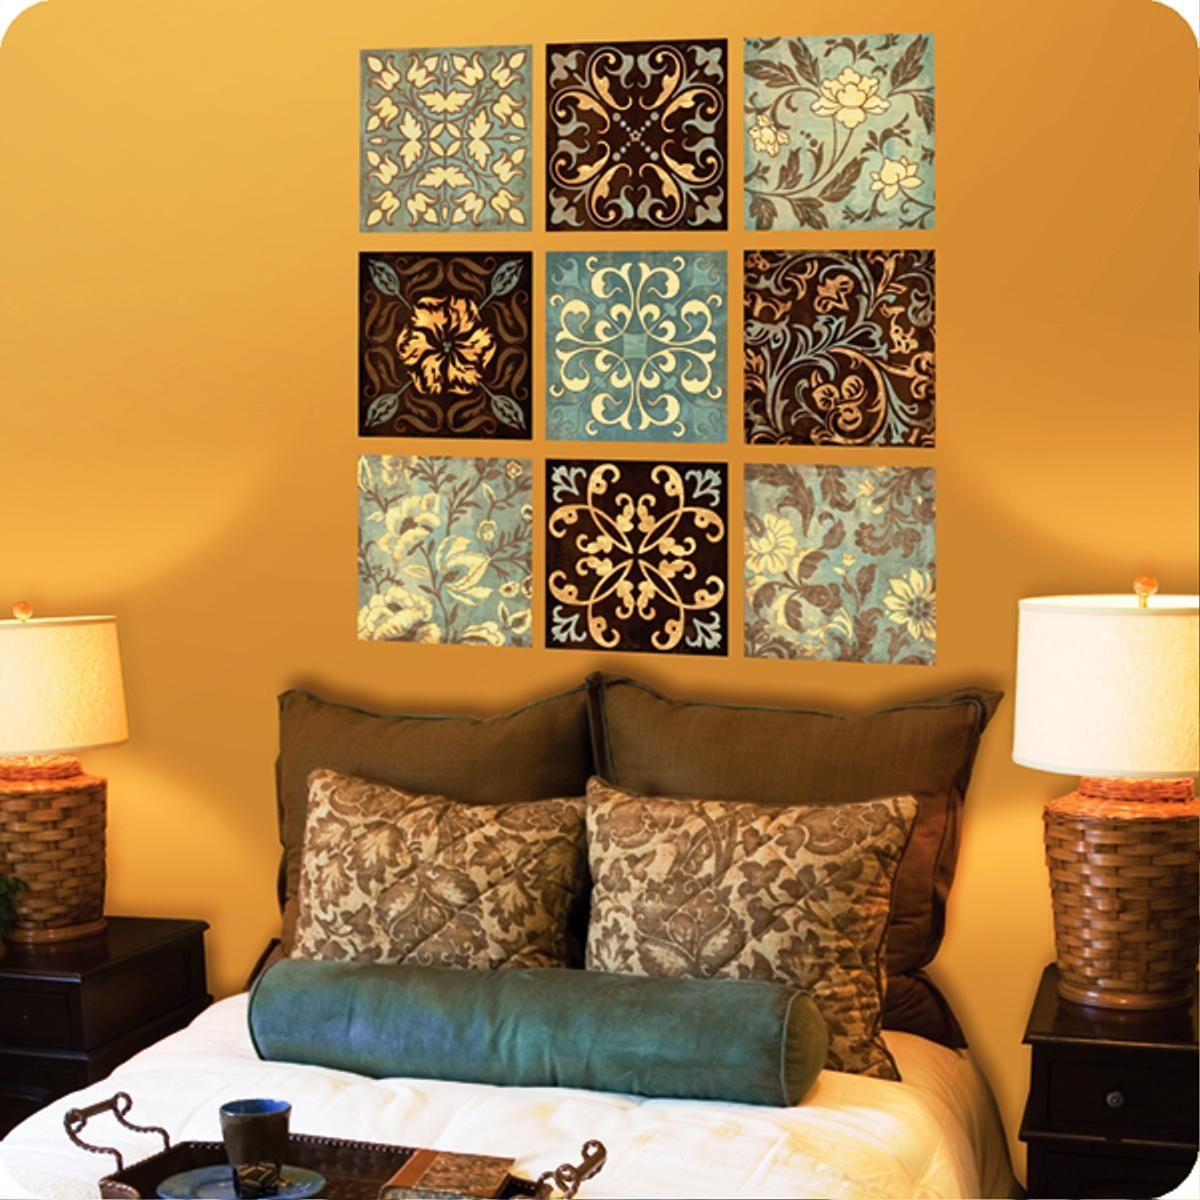 466 Best Diy Decorating Images On Pinterest Diy Crafts And Home with Pinterest Wall Art Decor